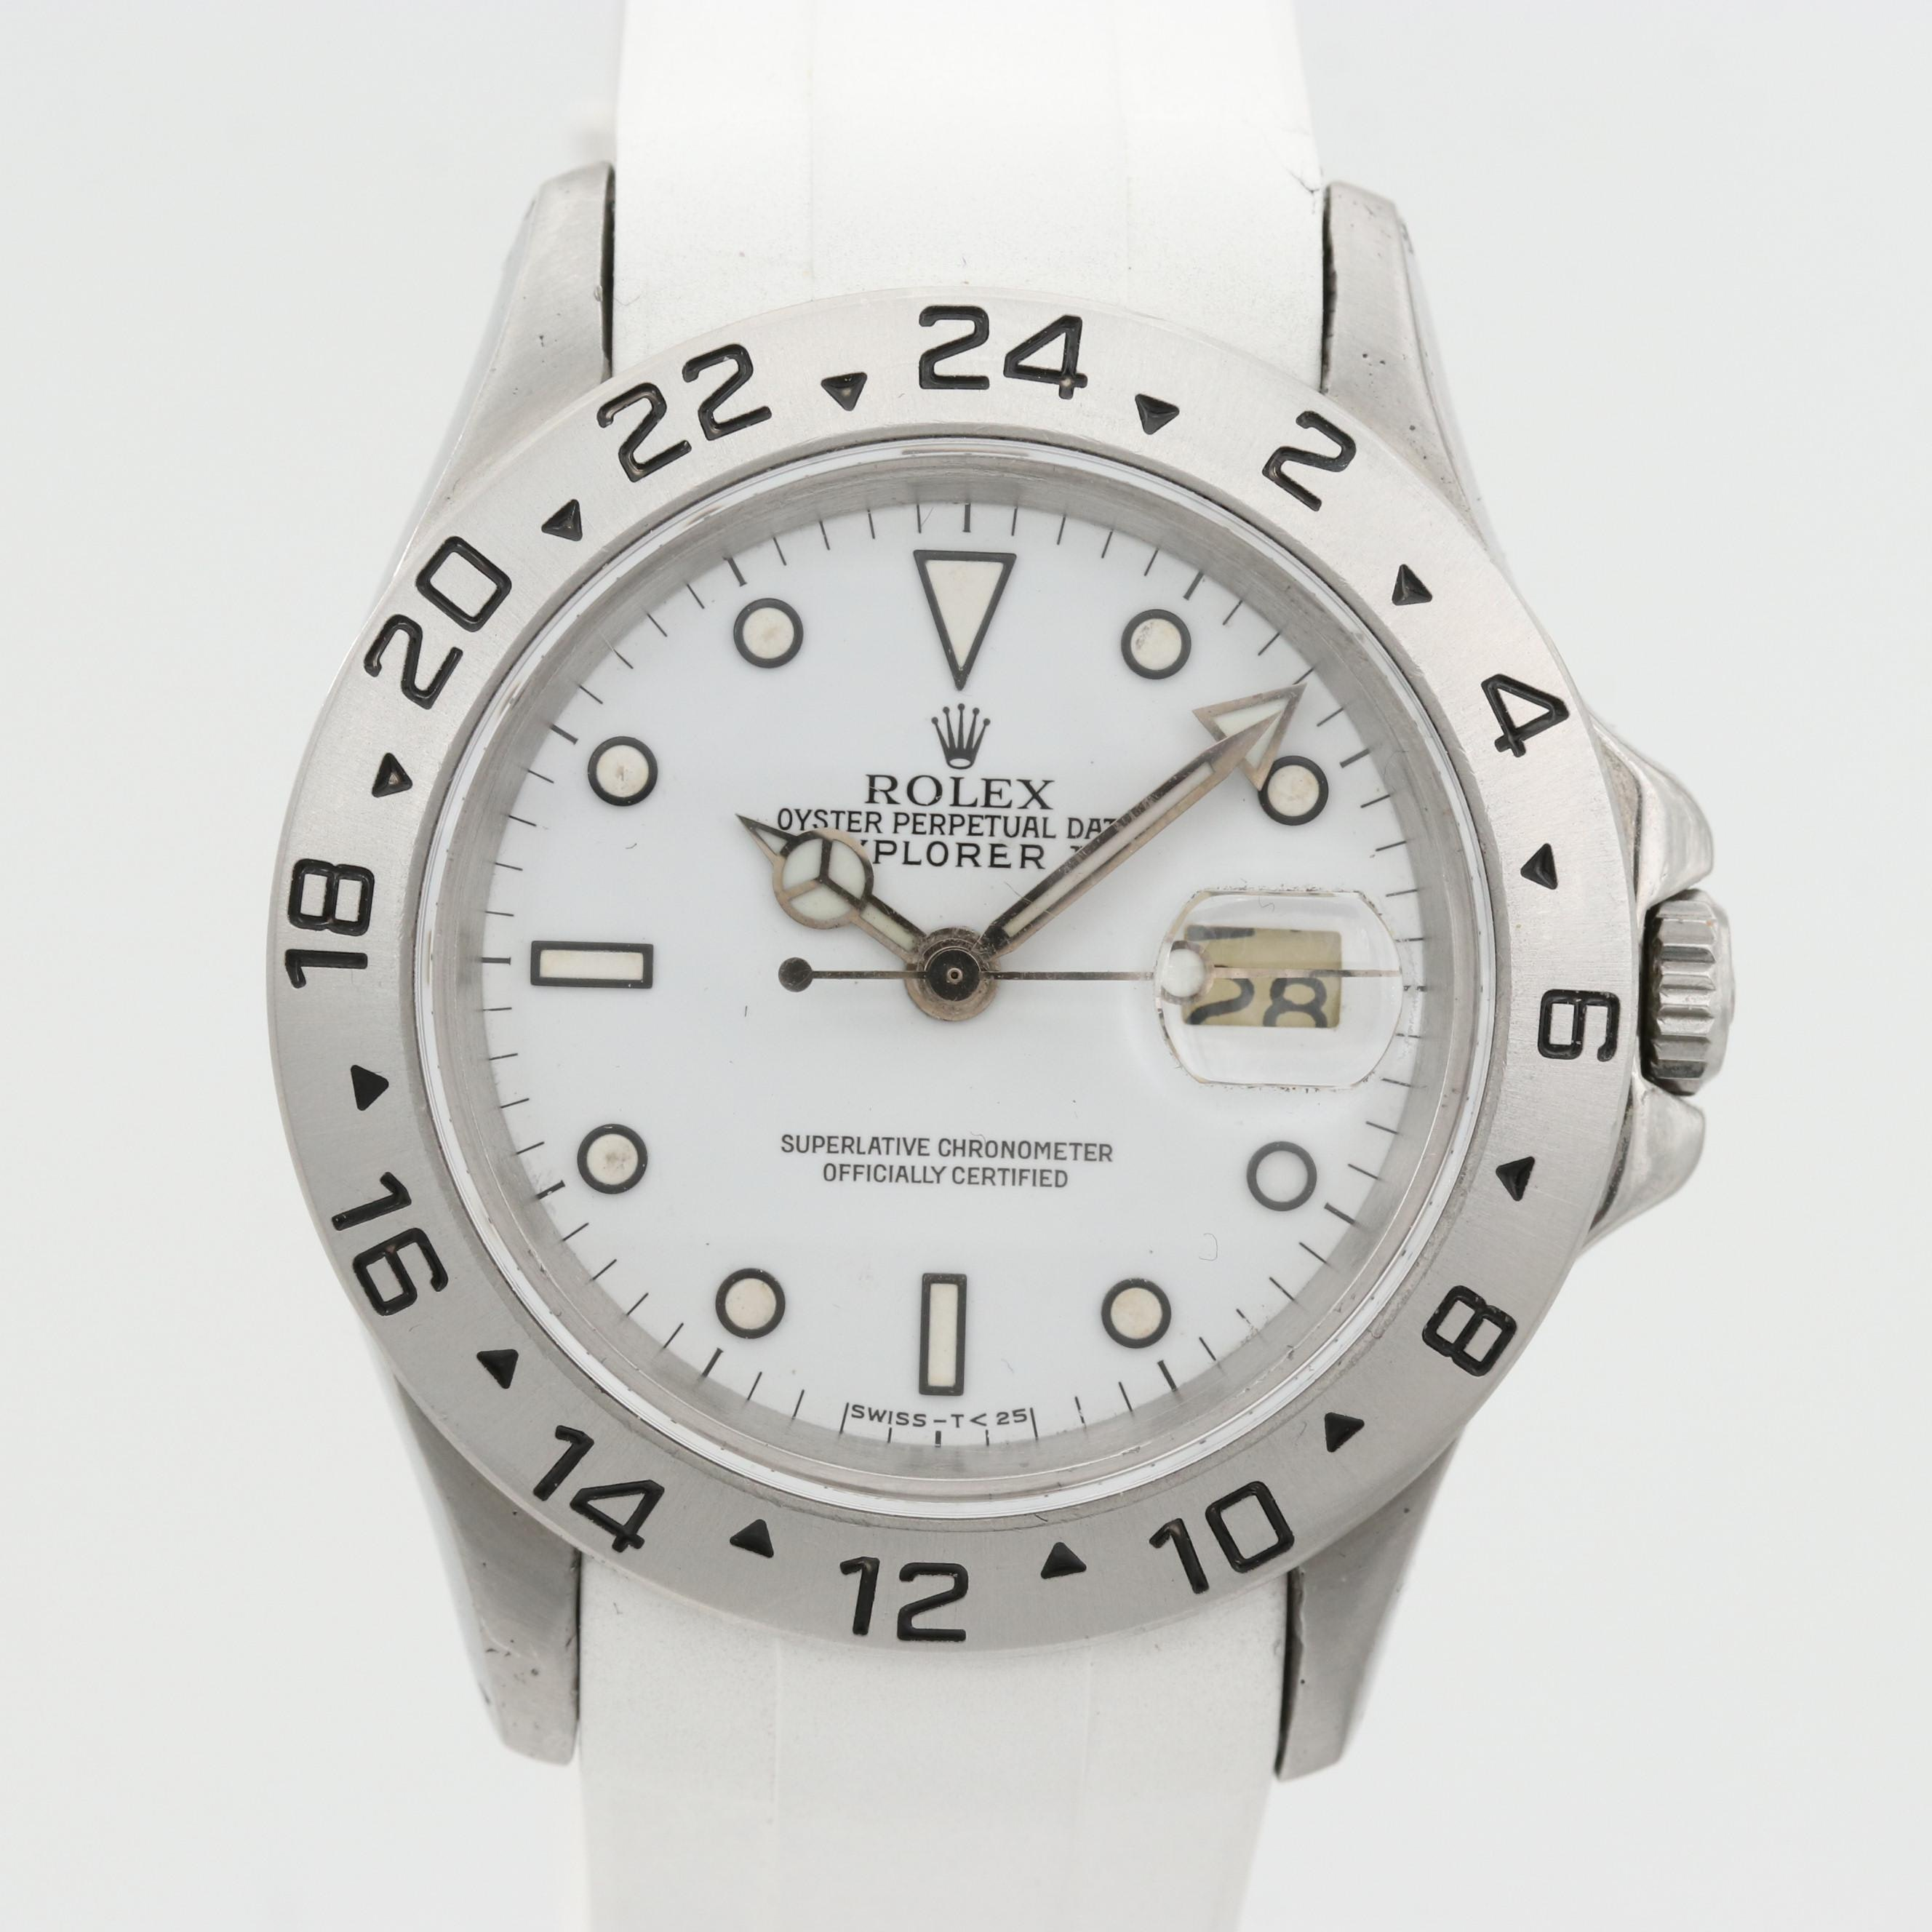 Rolex Explorer II Wristwatch With White Dial, 1986